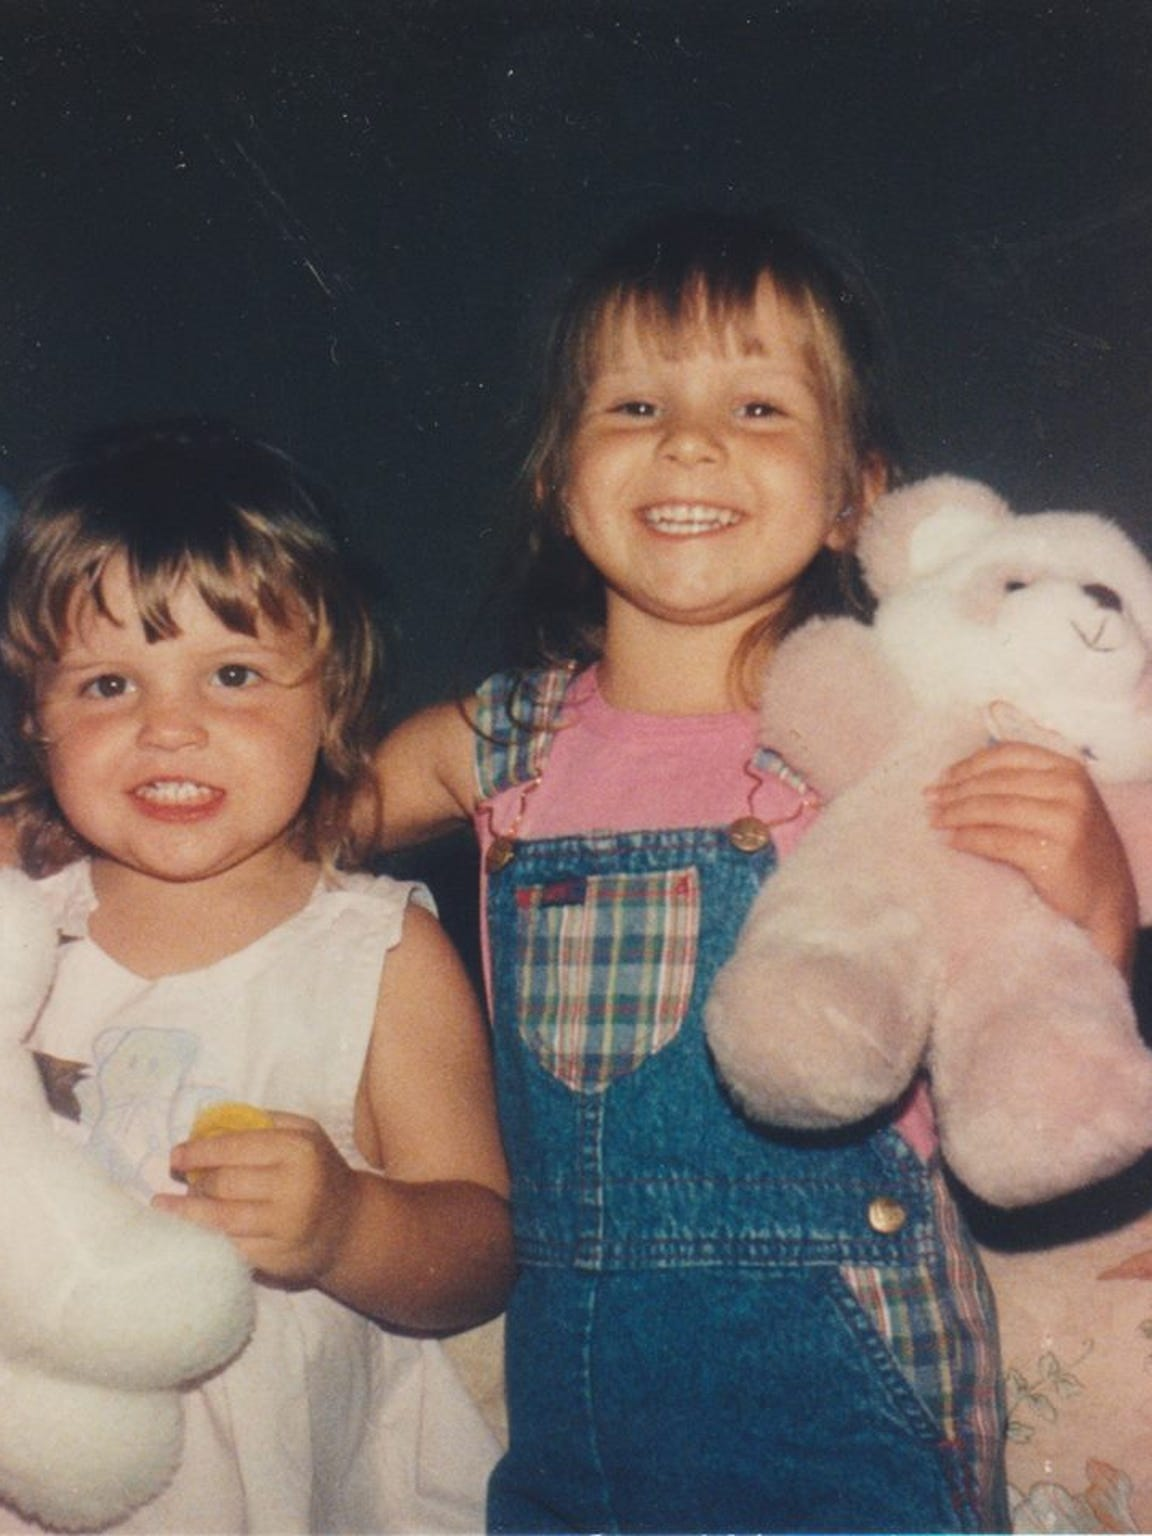 Heather Bogle, right, with sister Jennifer Bogle, when she was about 4 years old.